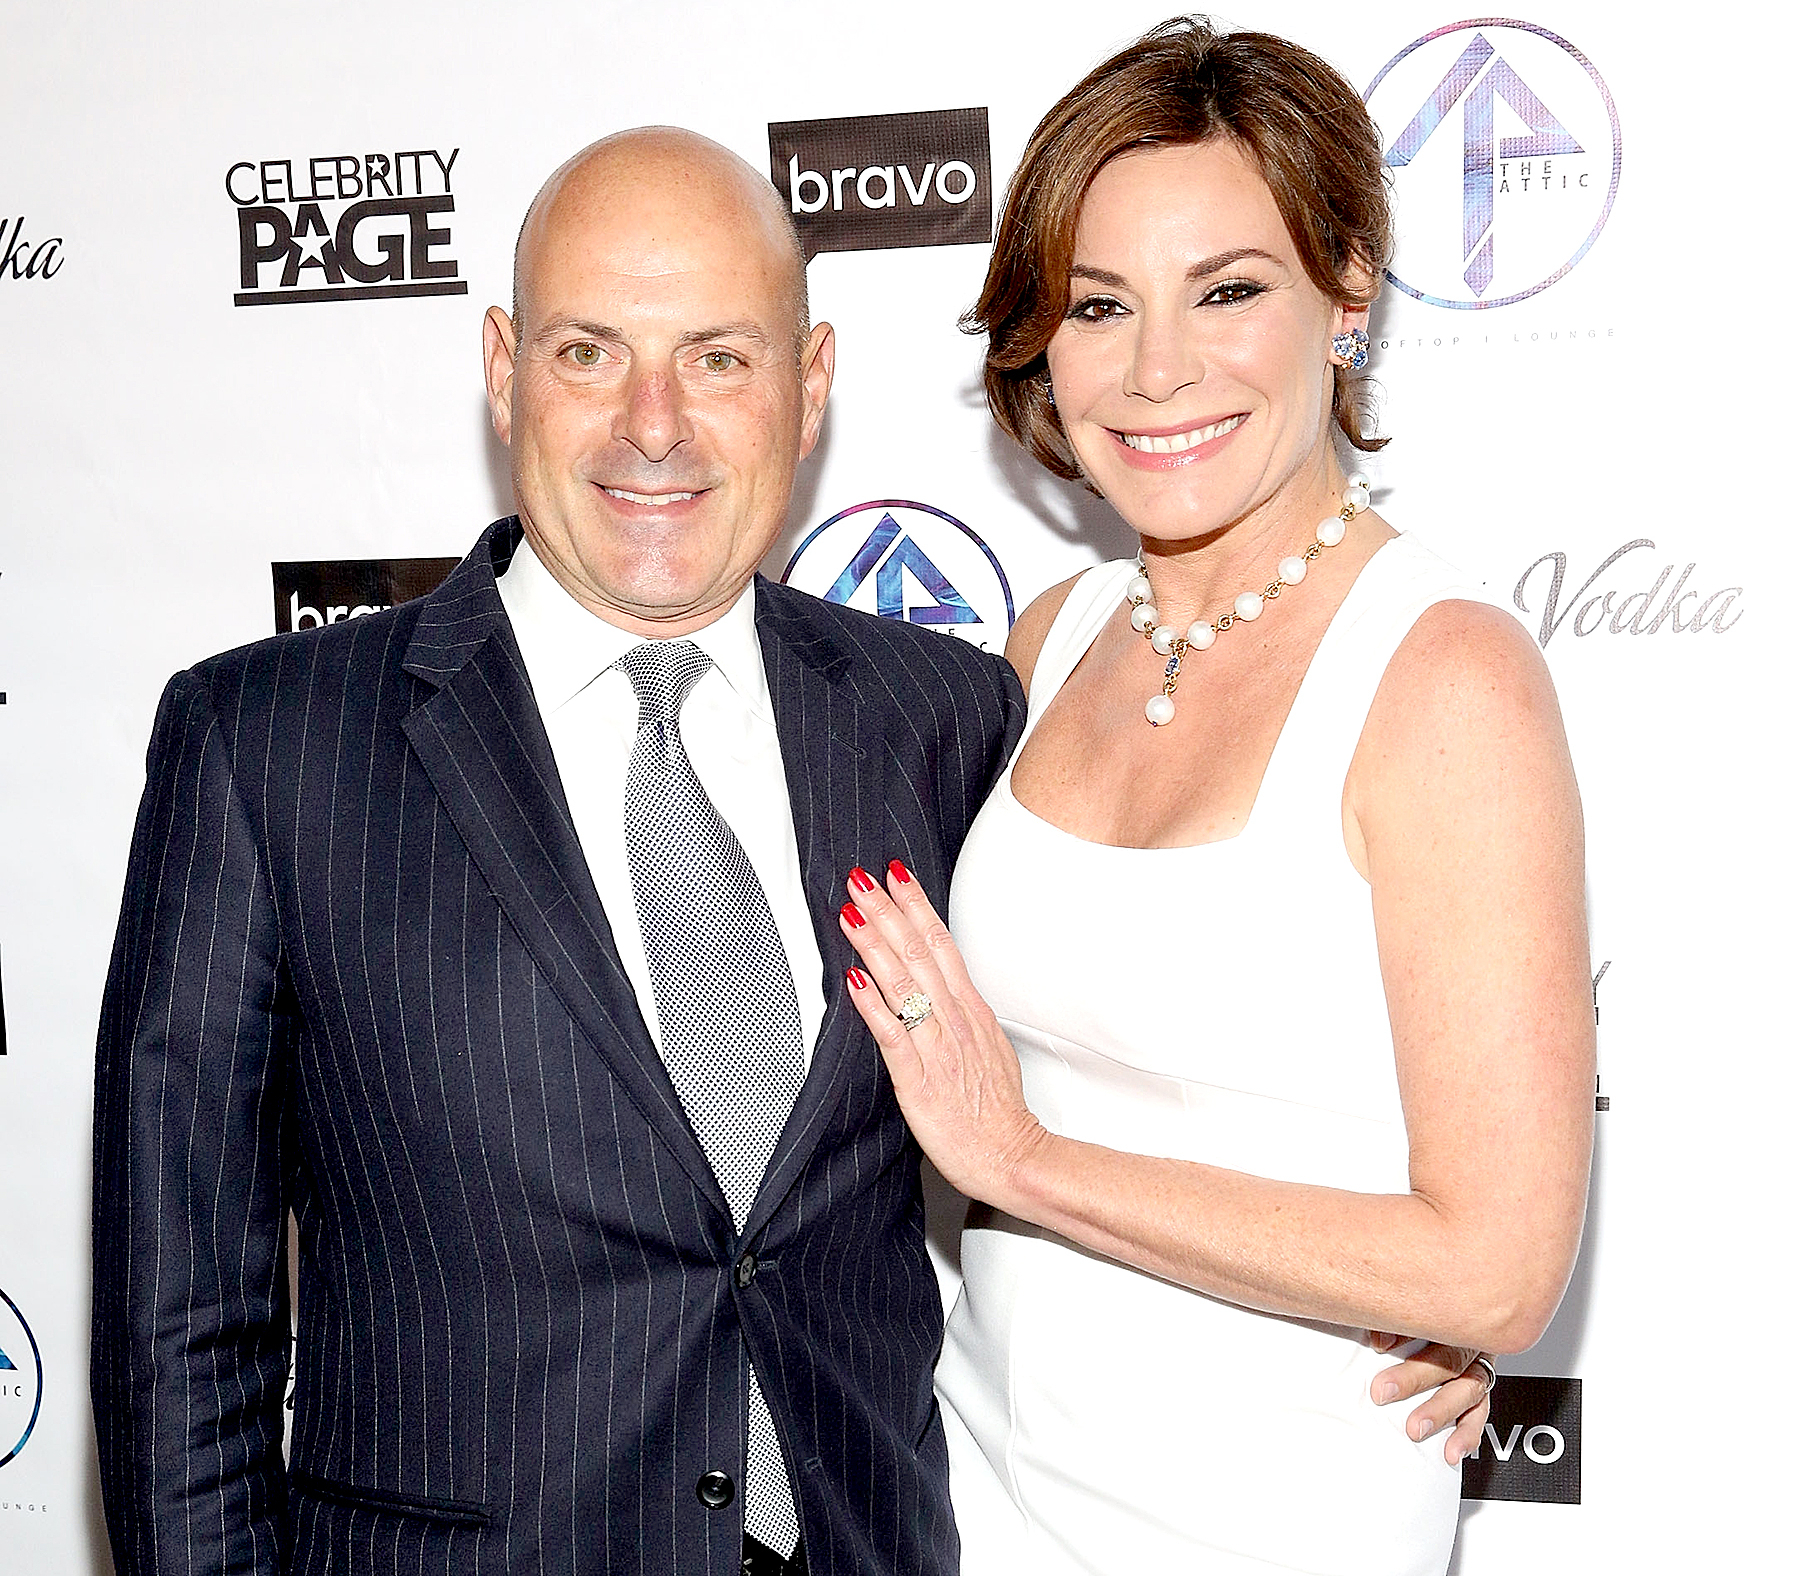 Tom D'Agostino and Luann de Lesseps attend 'The Real Housewives of New York City' season 9 premiere party at The Attic Rooftop Lounge in New York City on April 5, 2017.